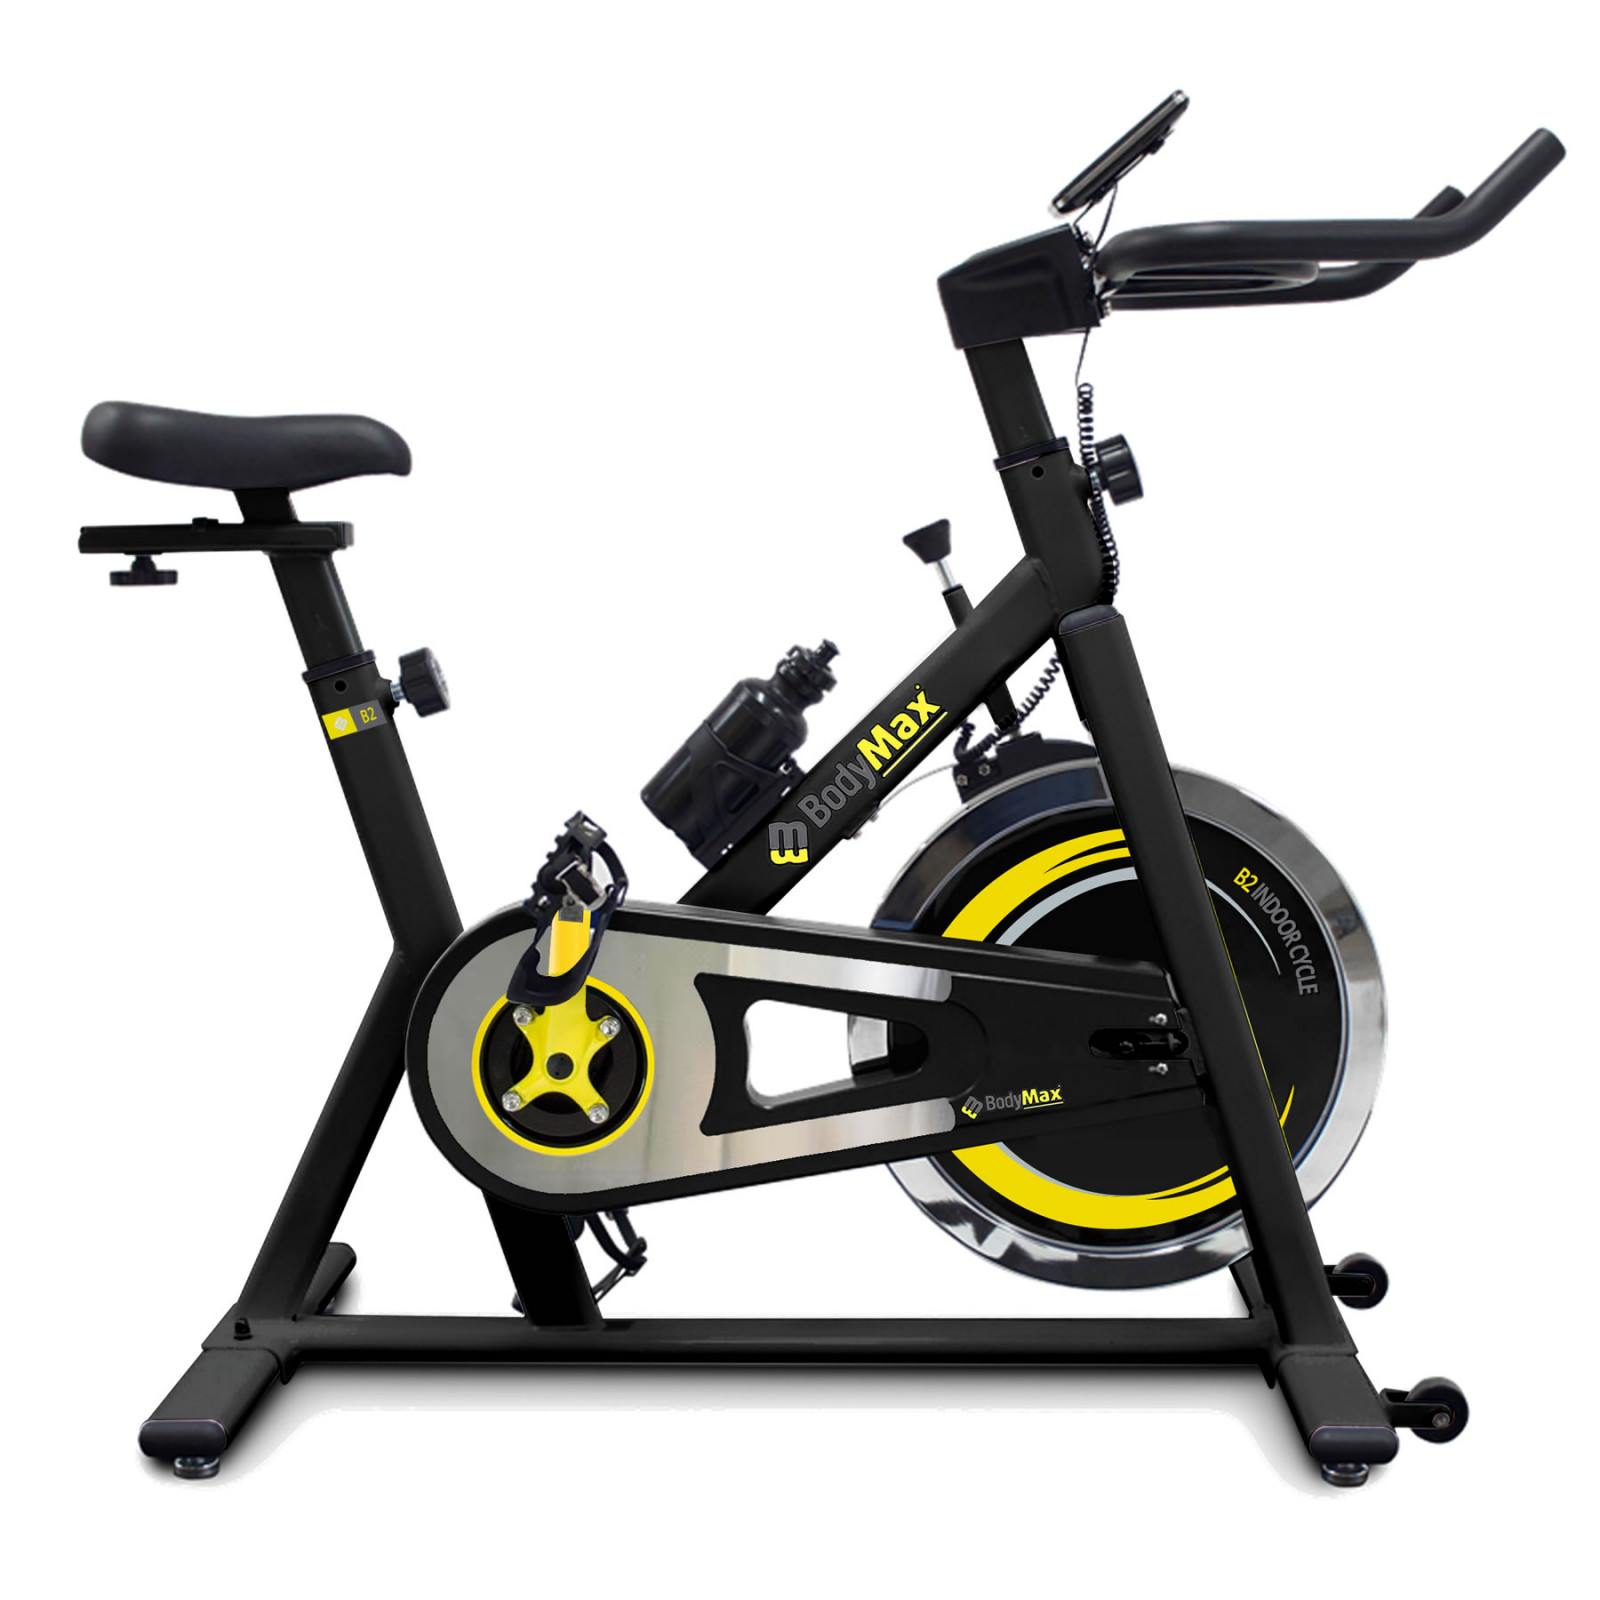 Bodymax B2 Indoor Studio Cycle Exercise Bike Black Free Lcd Monitor Shop Online Powerhouse Fitness